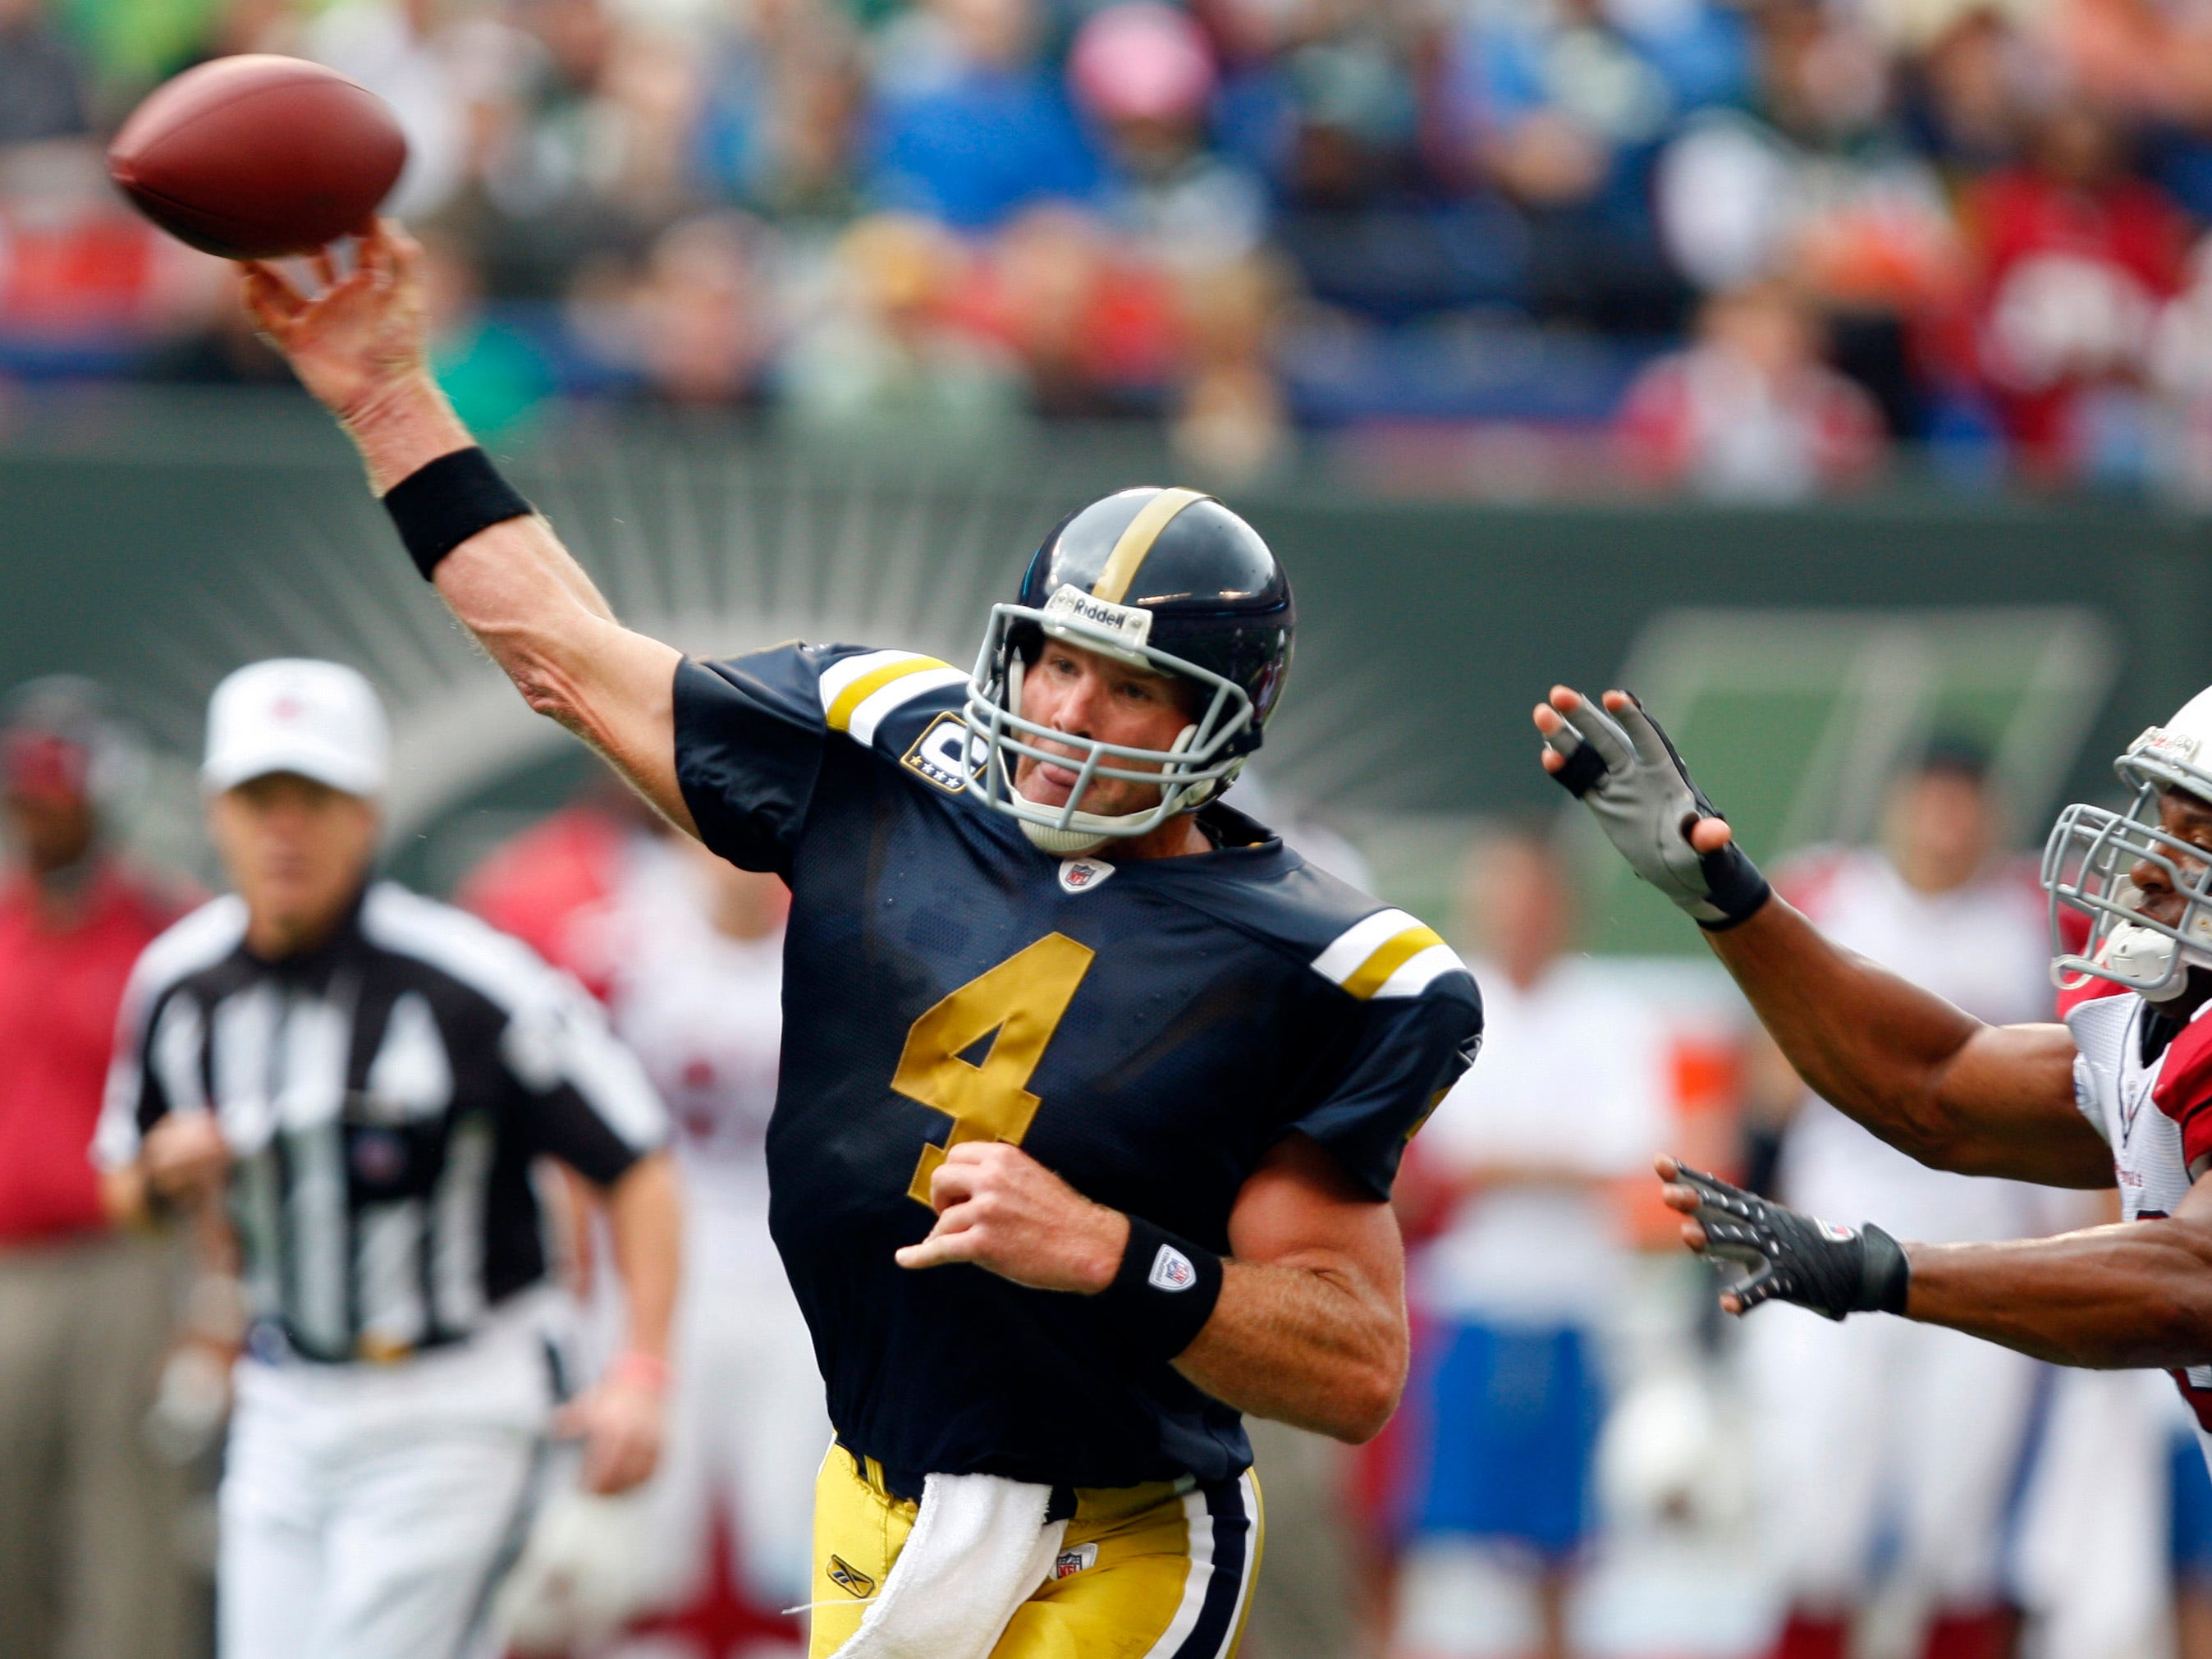 Even Hall of Fame QB Brett Favre couldn't make these Jets uniforms look good. Still to Kelly Green.